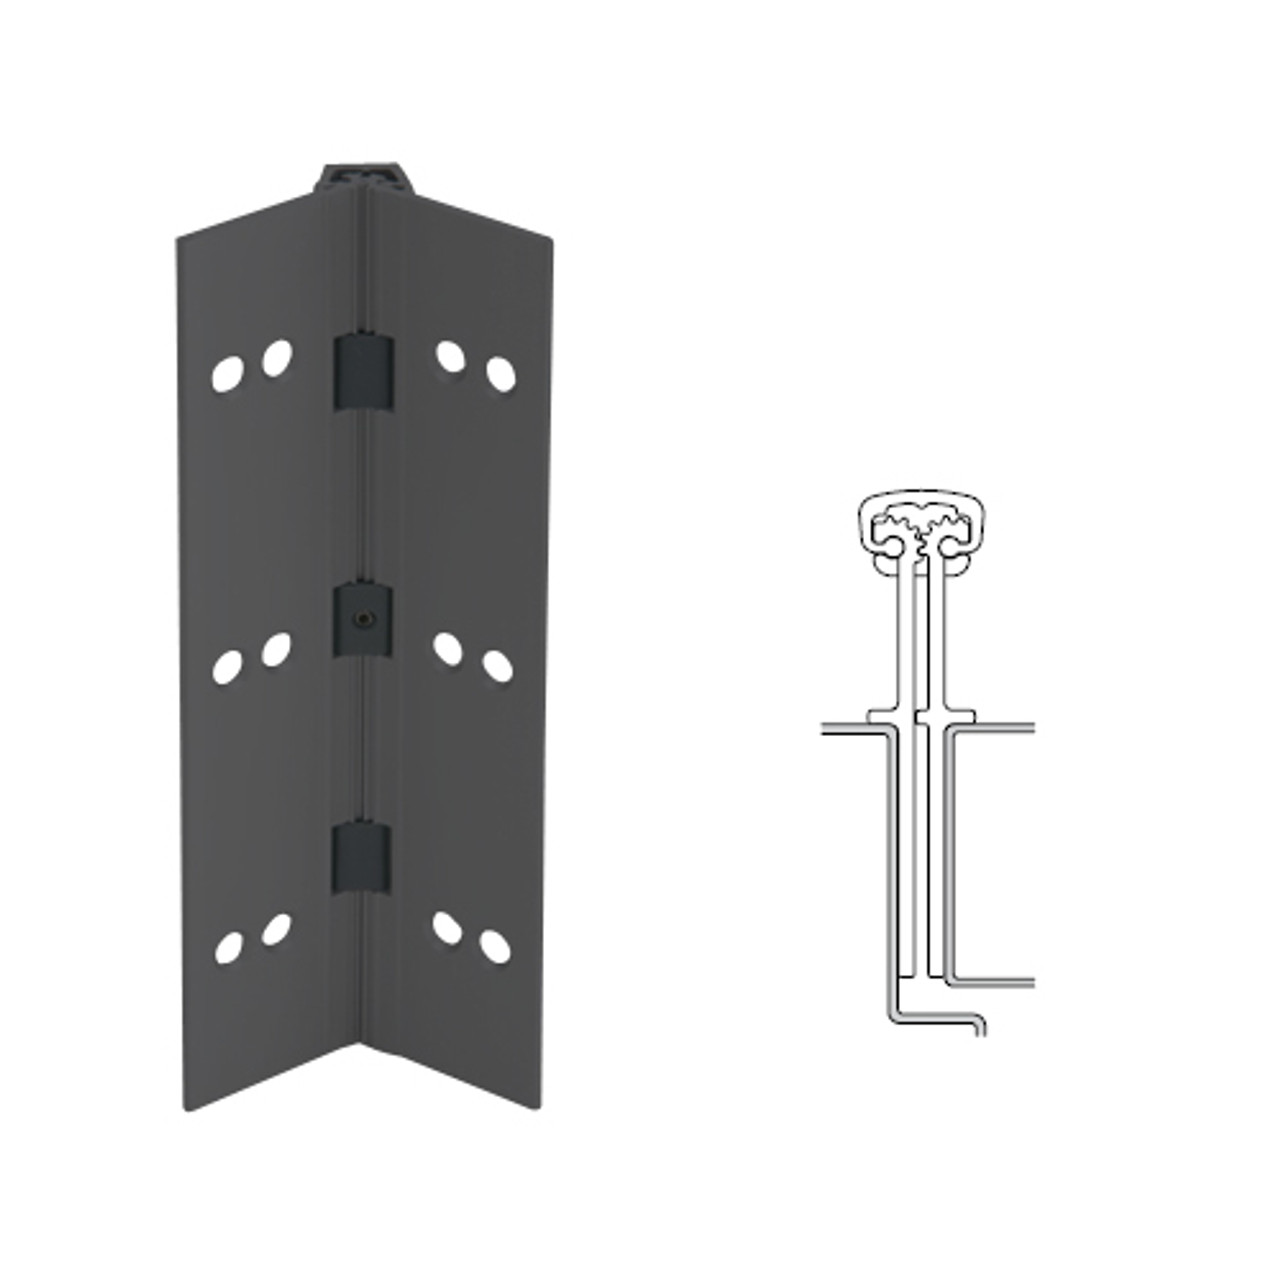 040XY-315AN-83-TF IVES Full Mortise Continuous Geared Hinges with Thread Forming Screws in Anodized Black